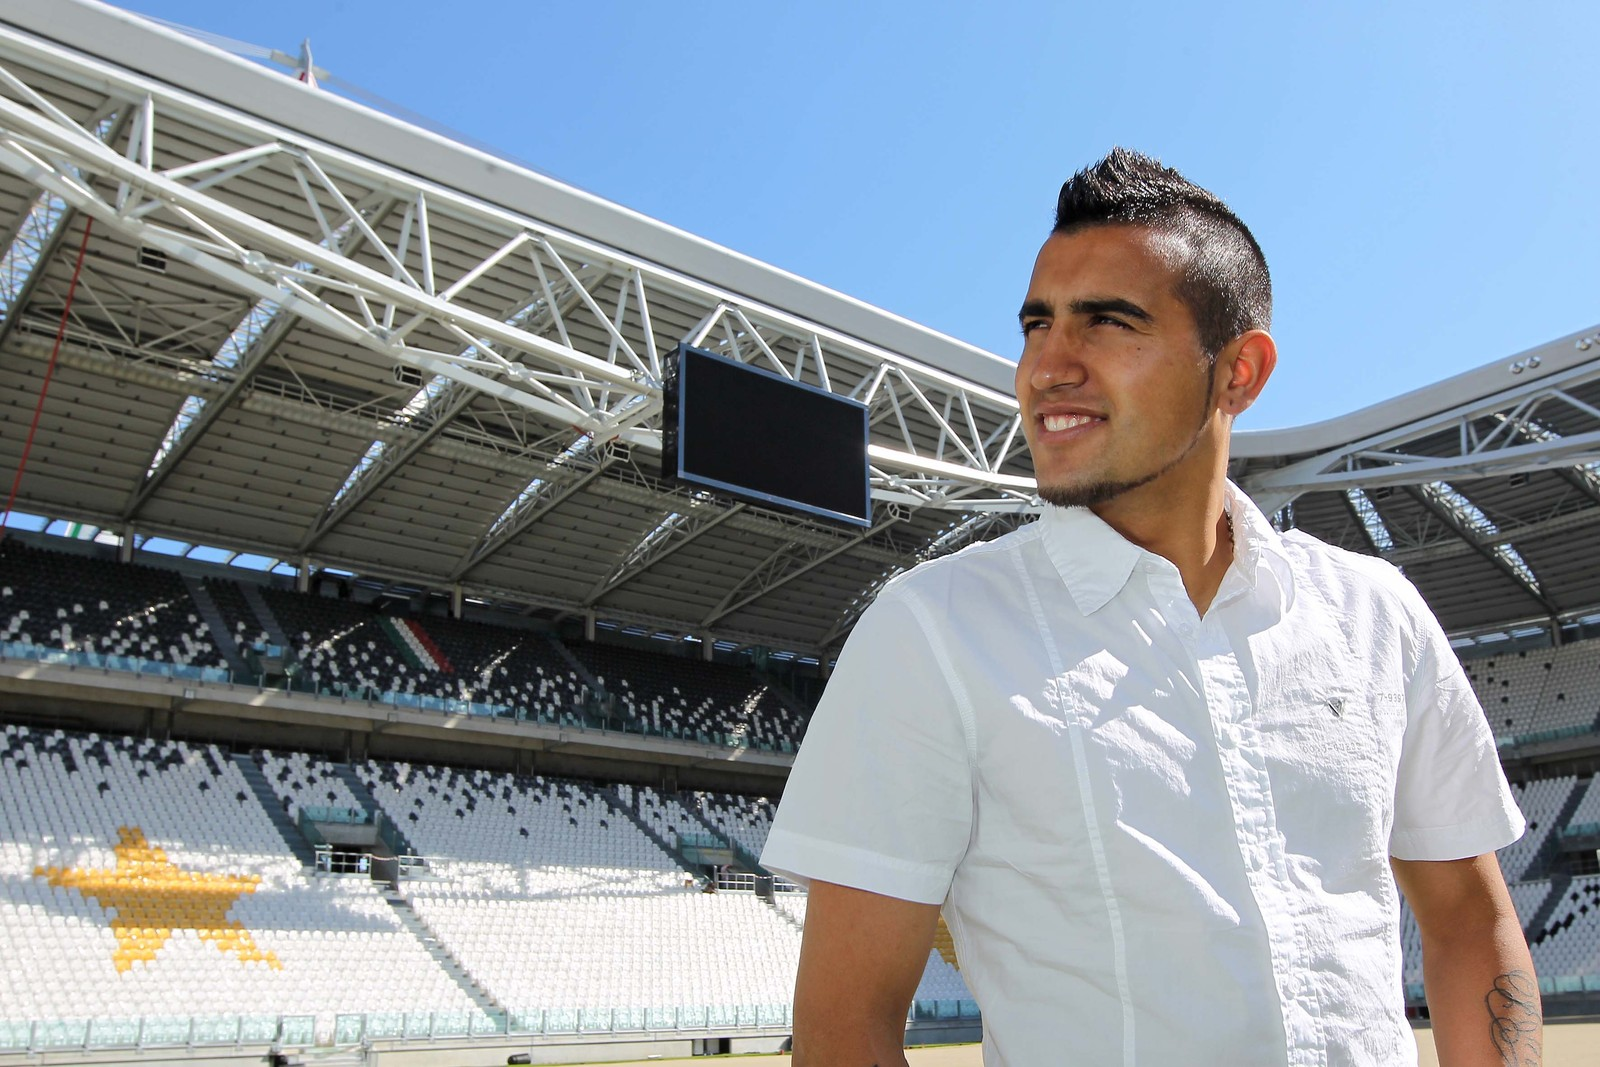 world sports center: the arrival of vidal and pirlo, juventus